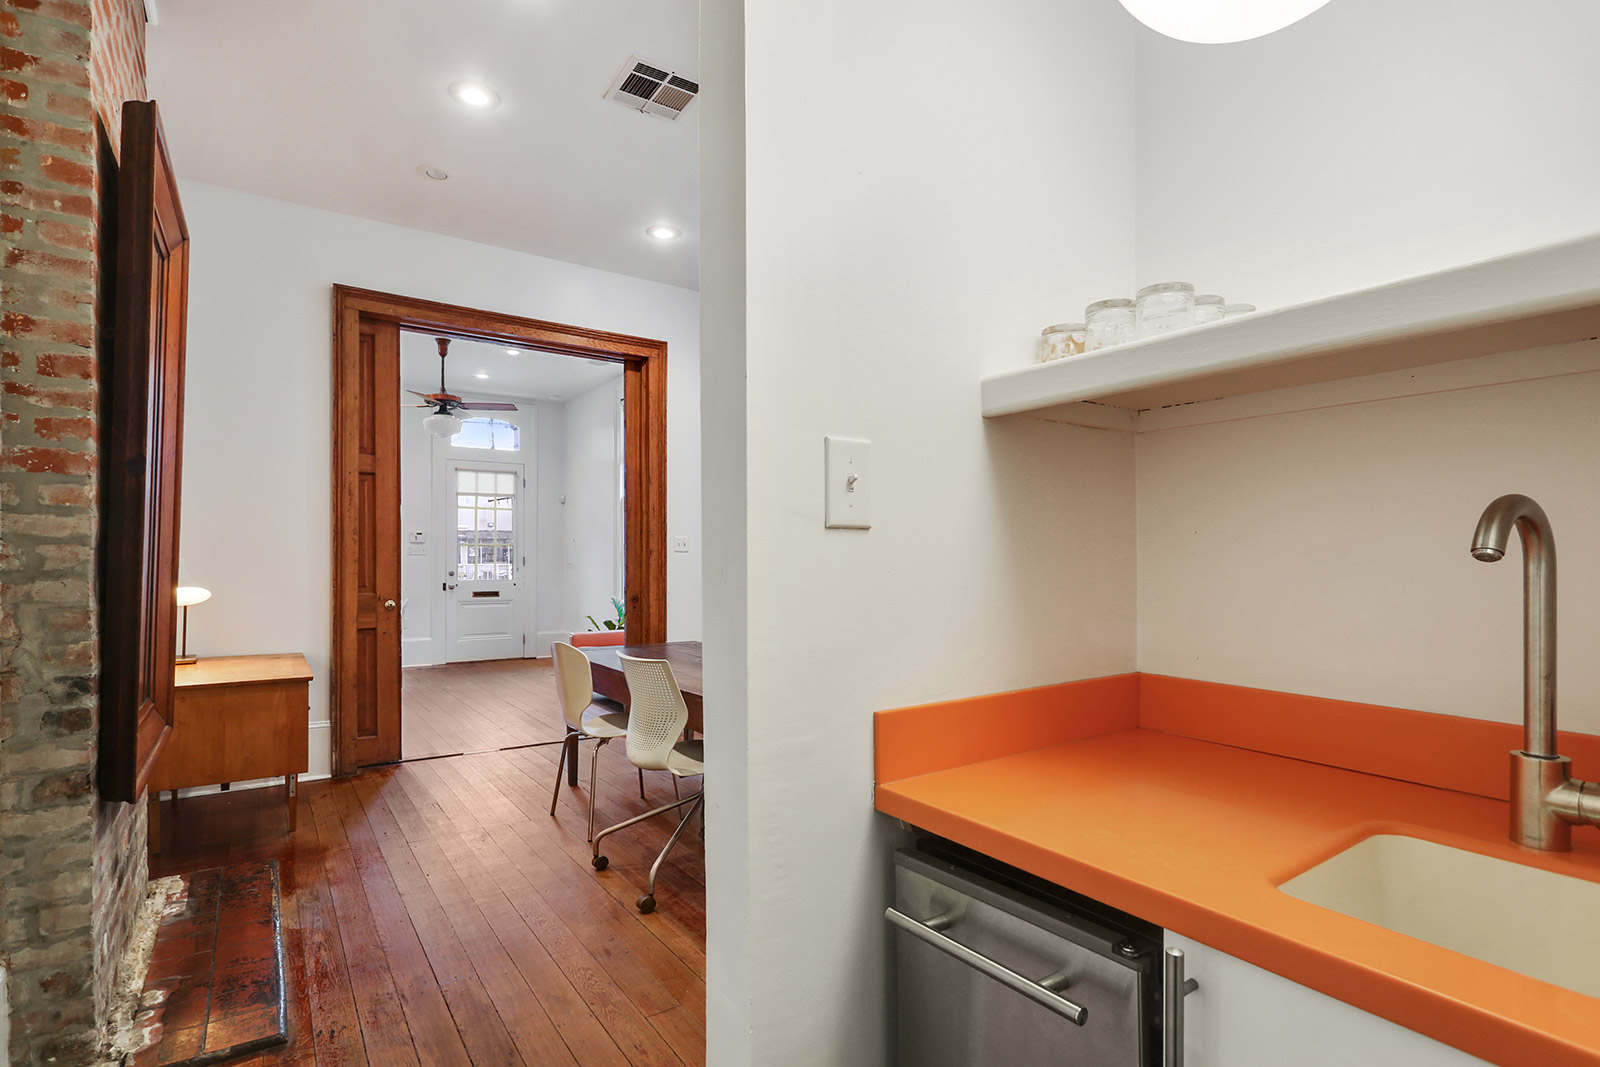 Uptown, Condo, 1 beds, 1.5 baths, $2800 per month New Orleans Rental - devie image_4